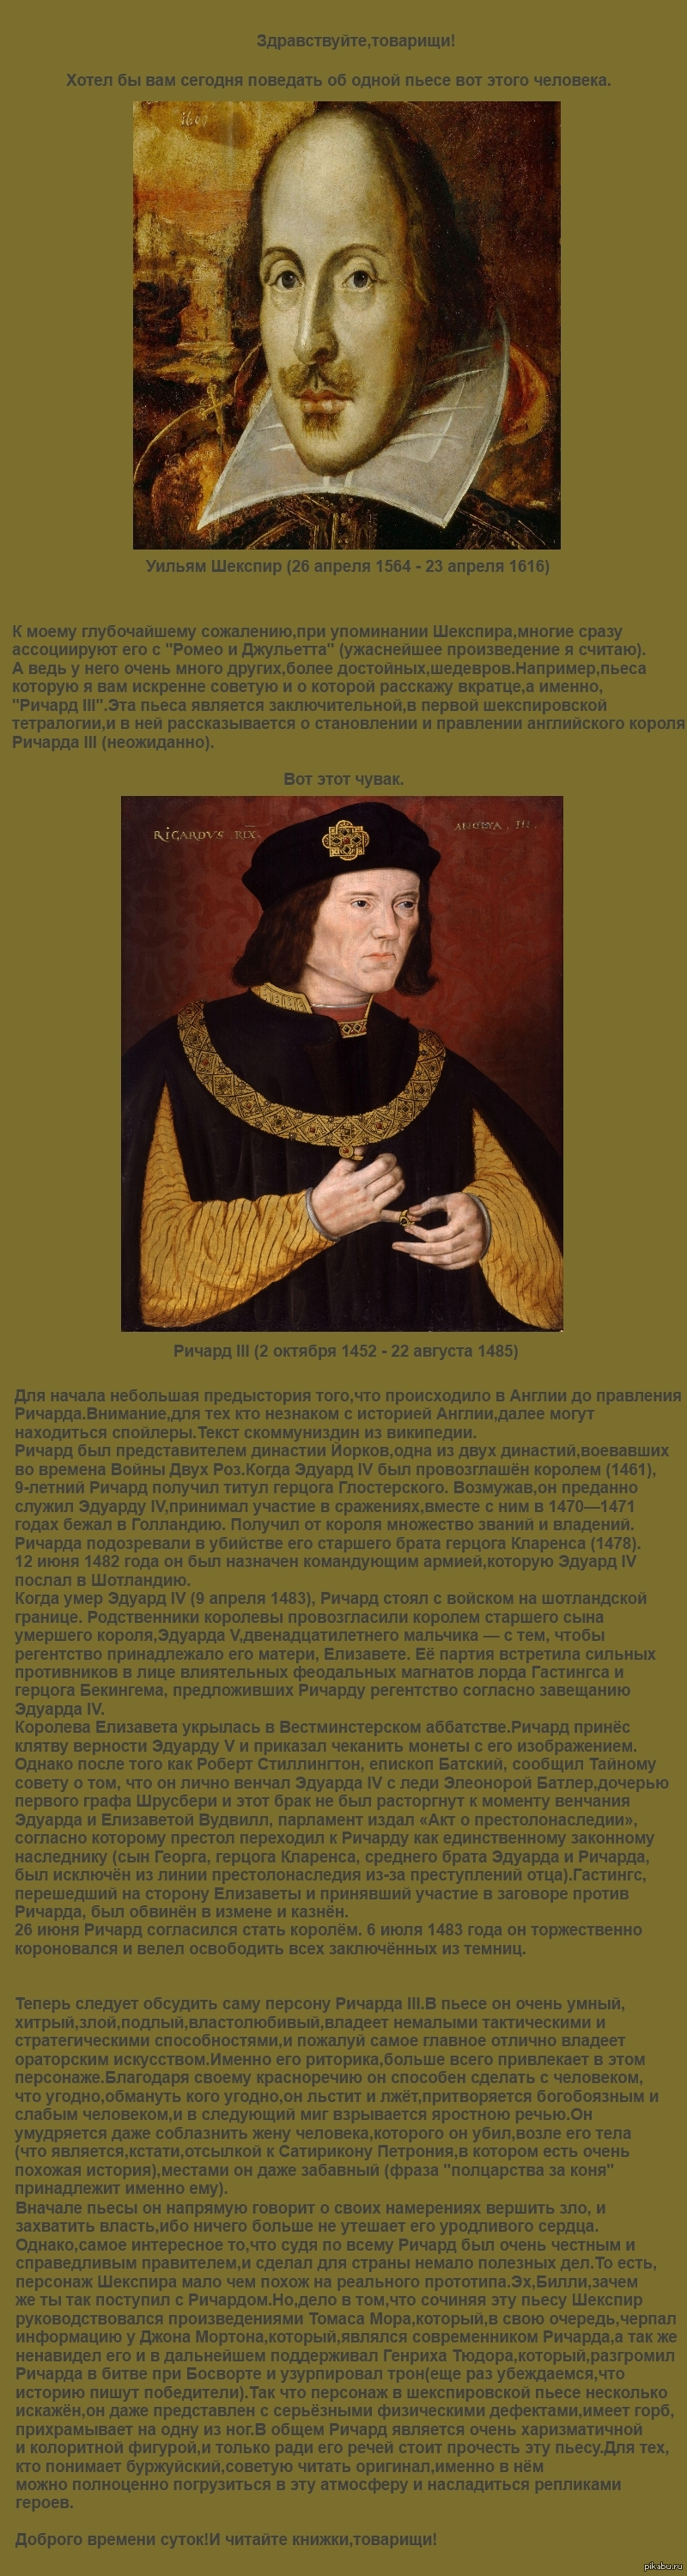 shakespeares interpretation of despot rule in richard iii You will want to be a thoughtful reader of king richard iii so that you can explore the implications of words and ideas in the script your analysis should show that you are aware of.